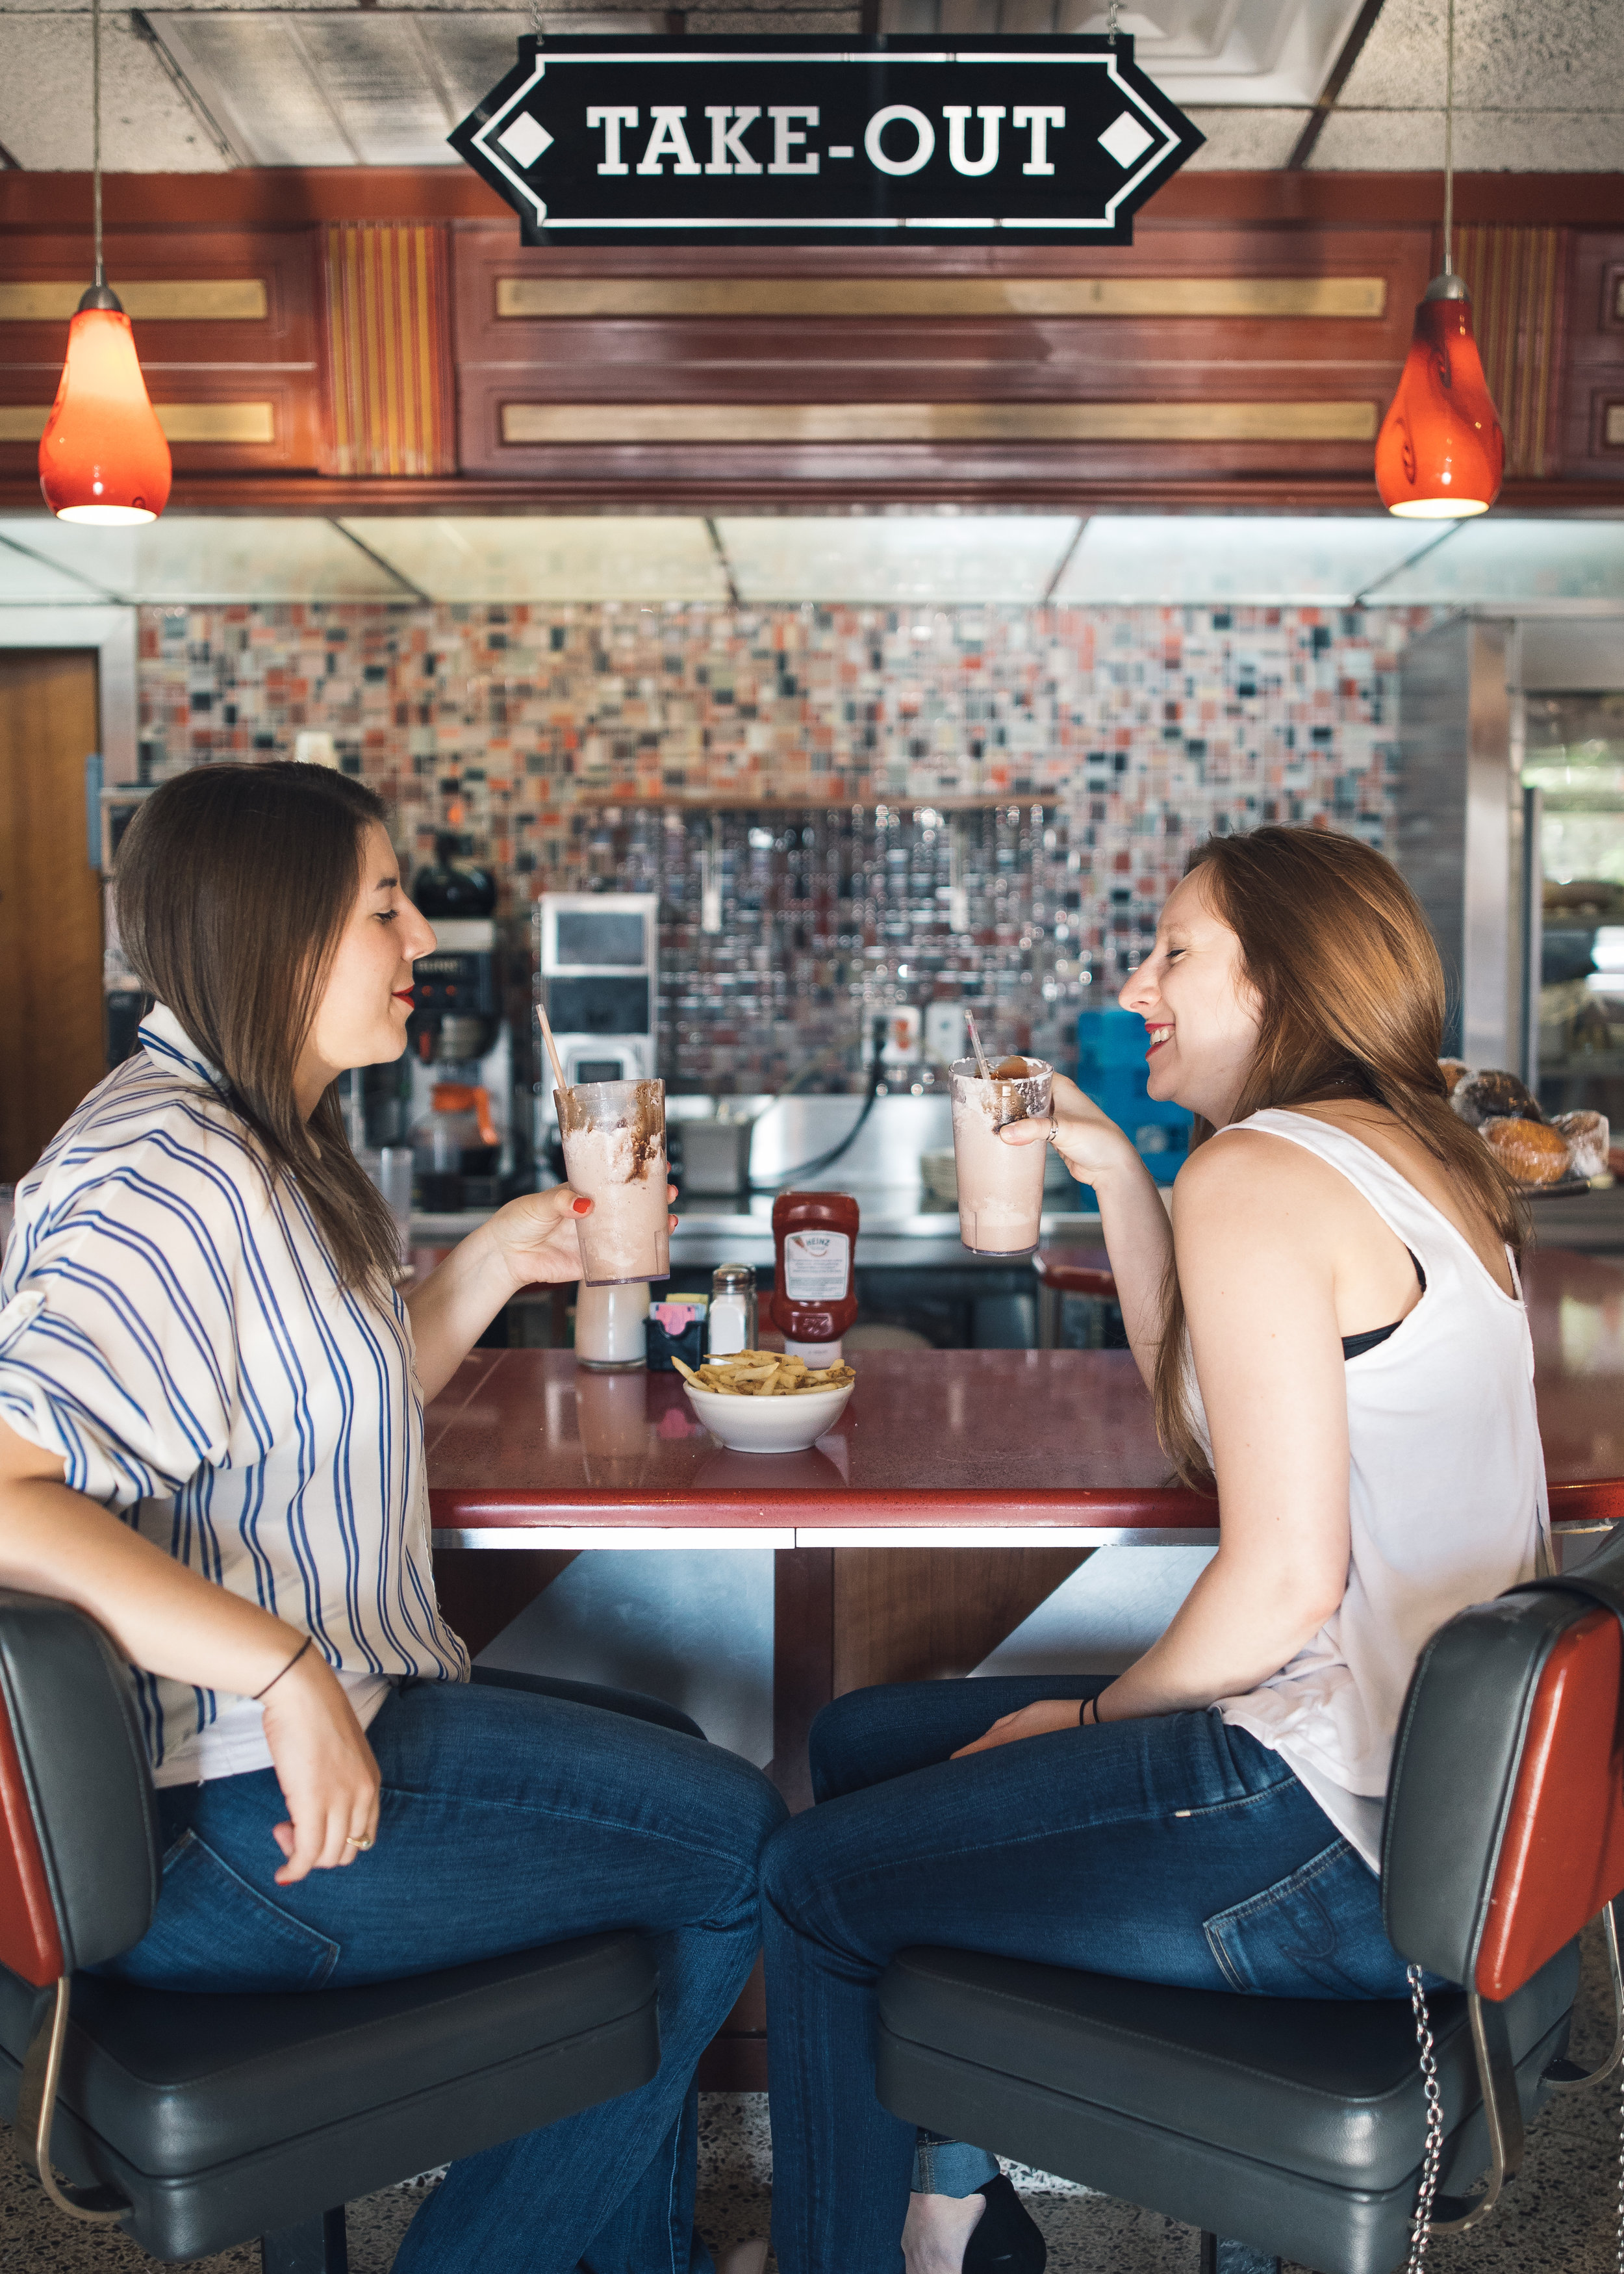 Broke Girls And The City. - By Sola Onitiri | Photos:Steven GrancellJess and Martine are self-proclaimed broke girls who love to travel, adventure & go to happy hour. We didn't choose the broke lifestyle, the broke lifestyle chose us.